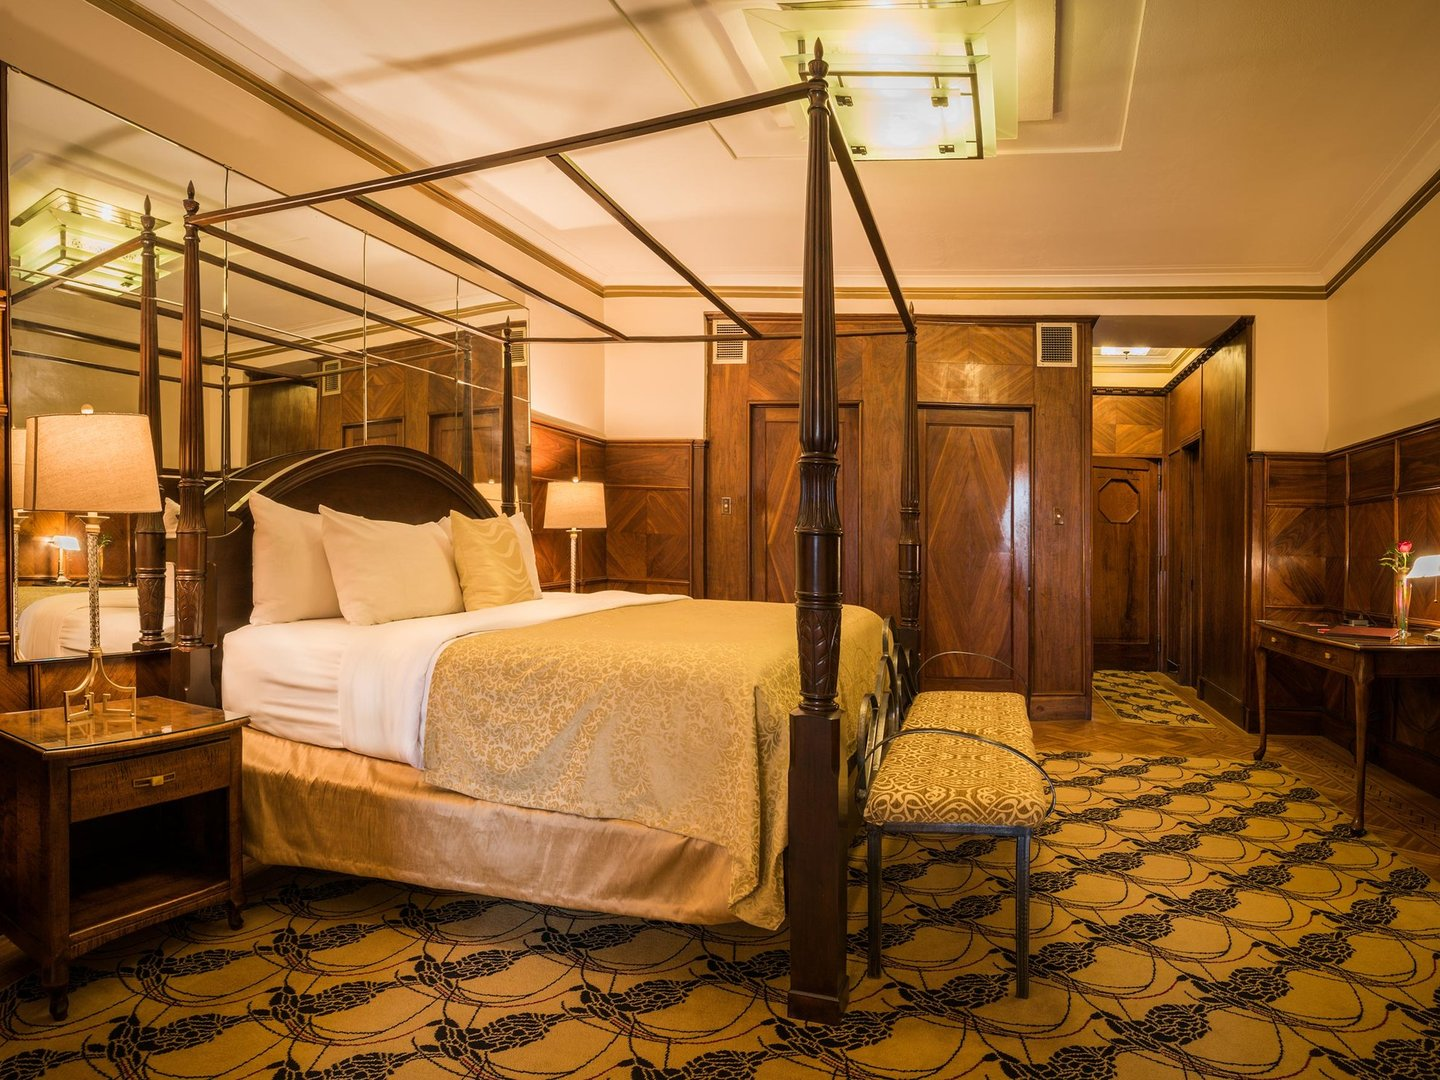 A bedroom with a large bed in a room at Le Manoir d'Auteuil.